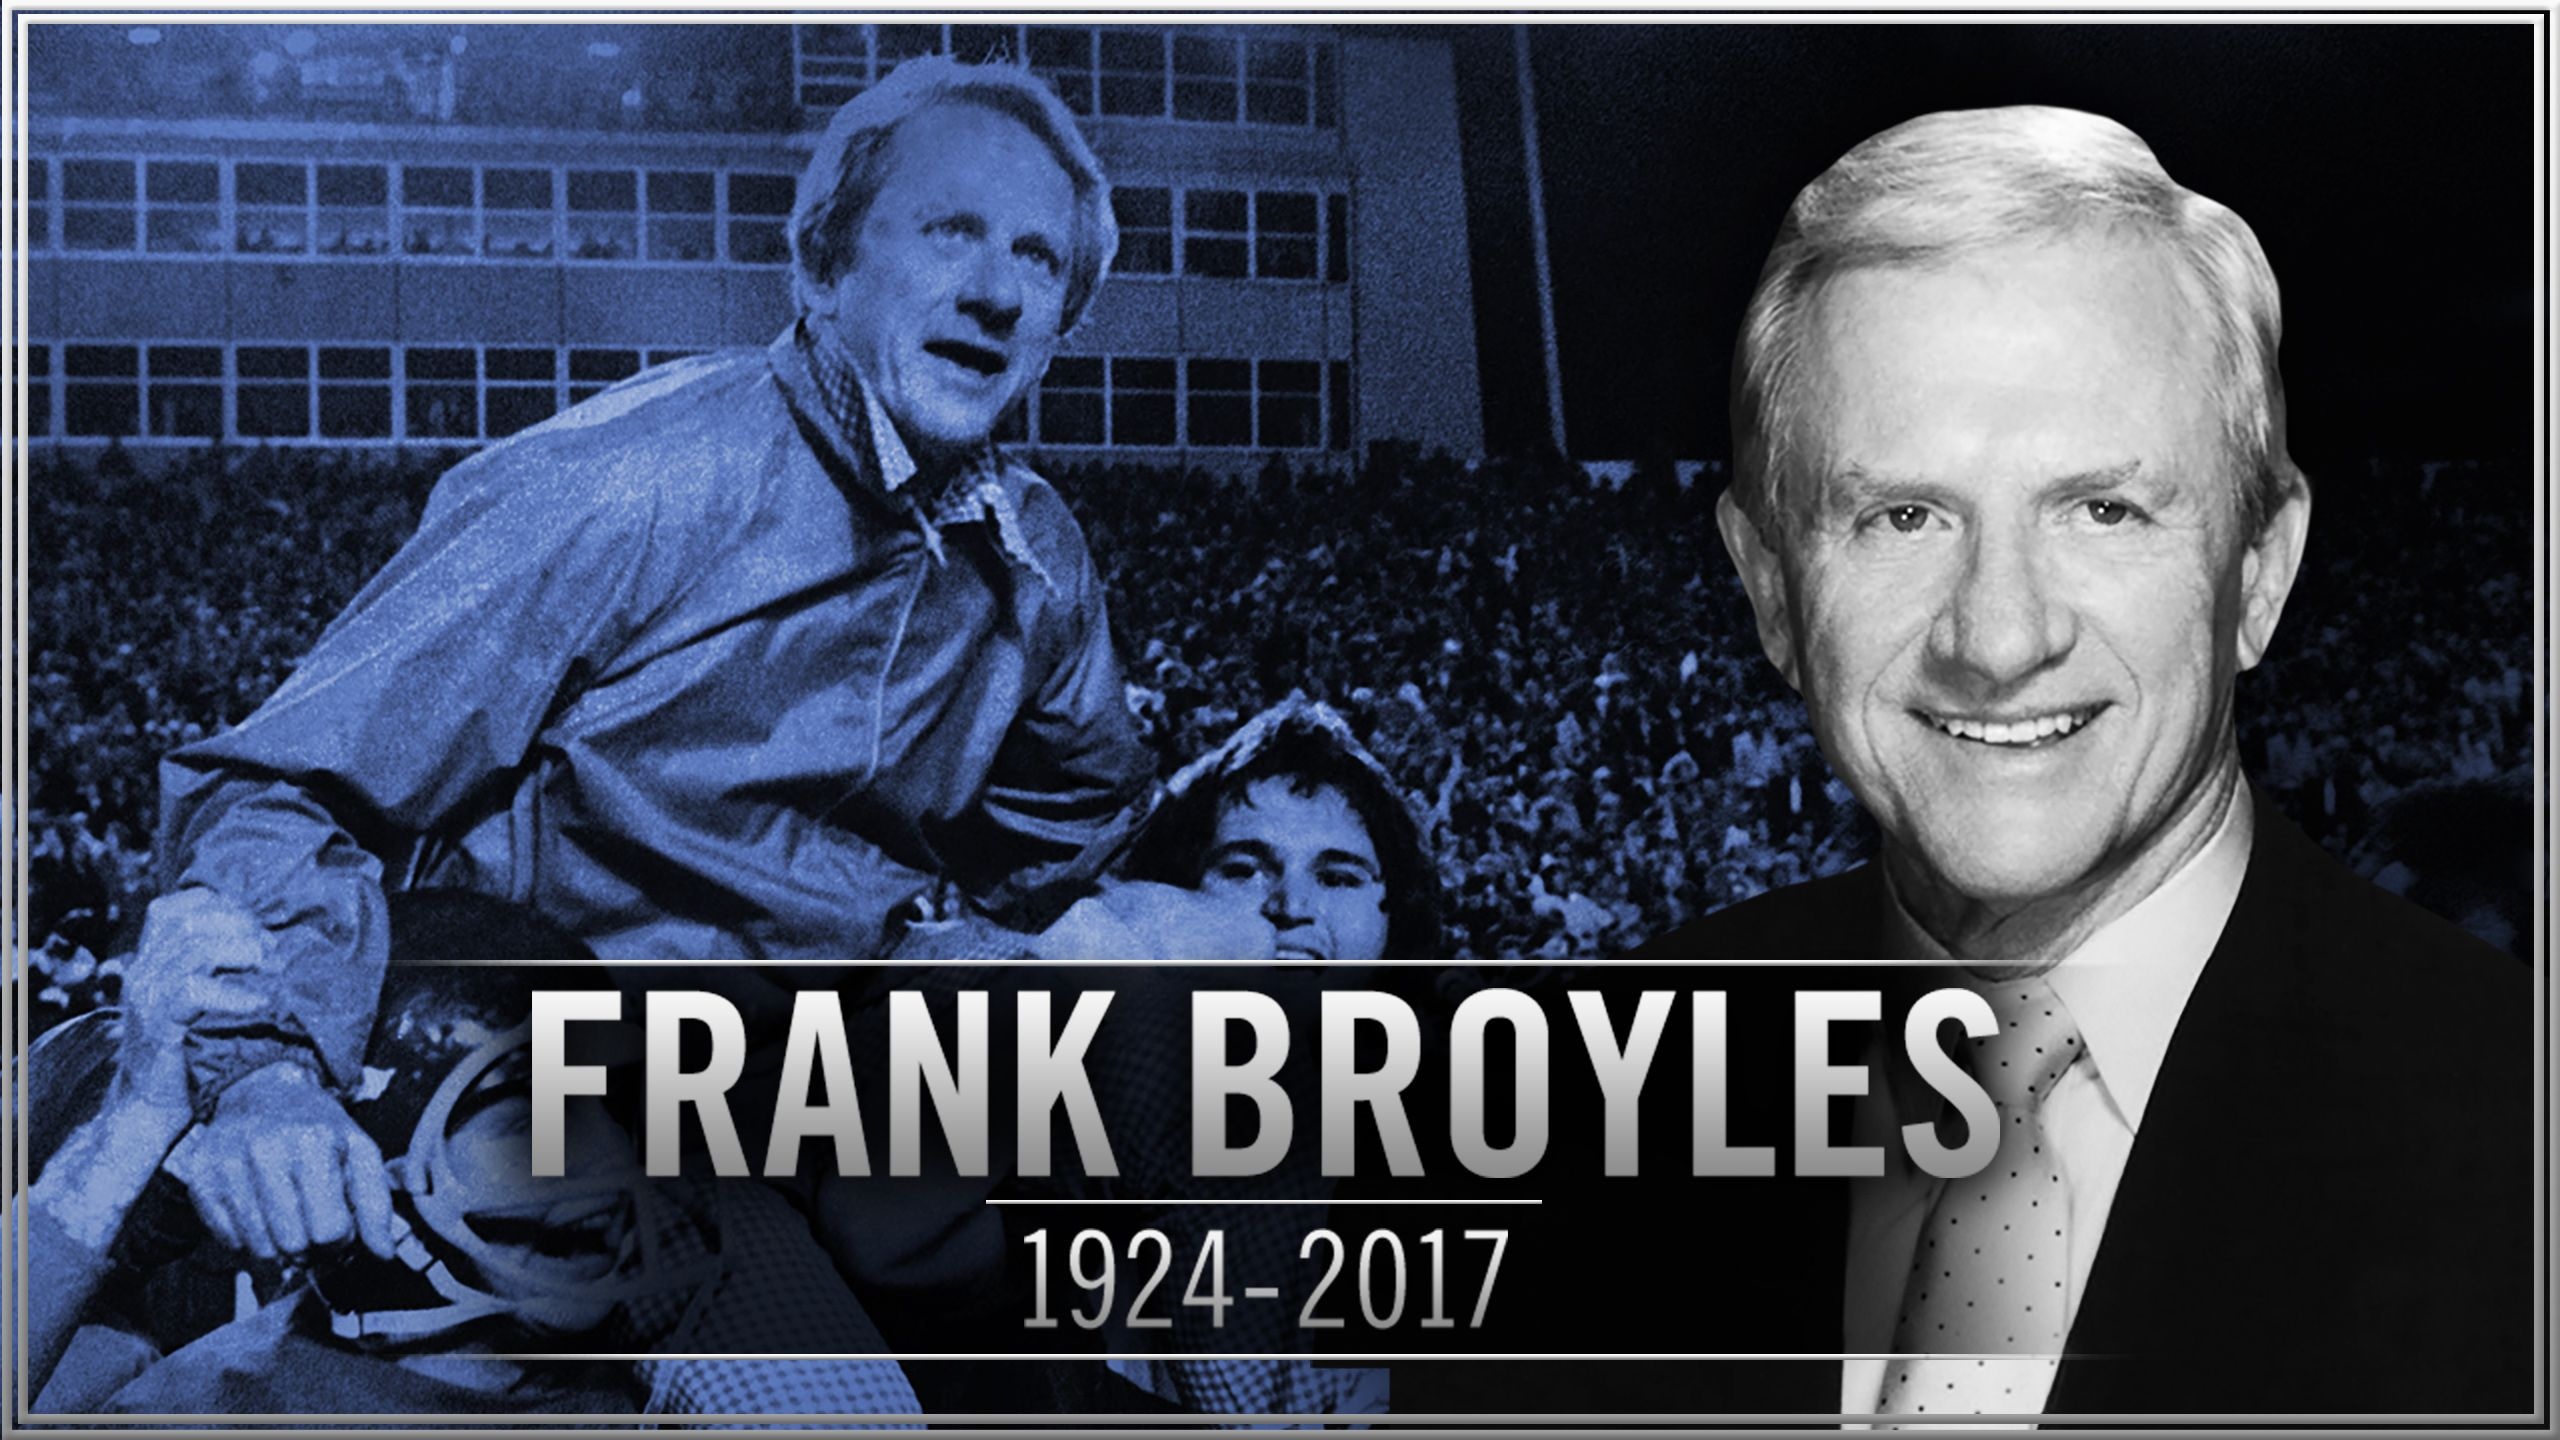 Frank Broyles Celebration of Life